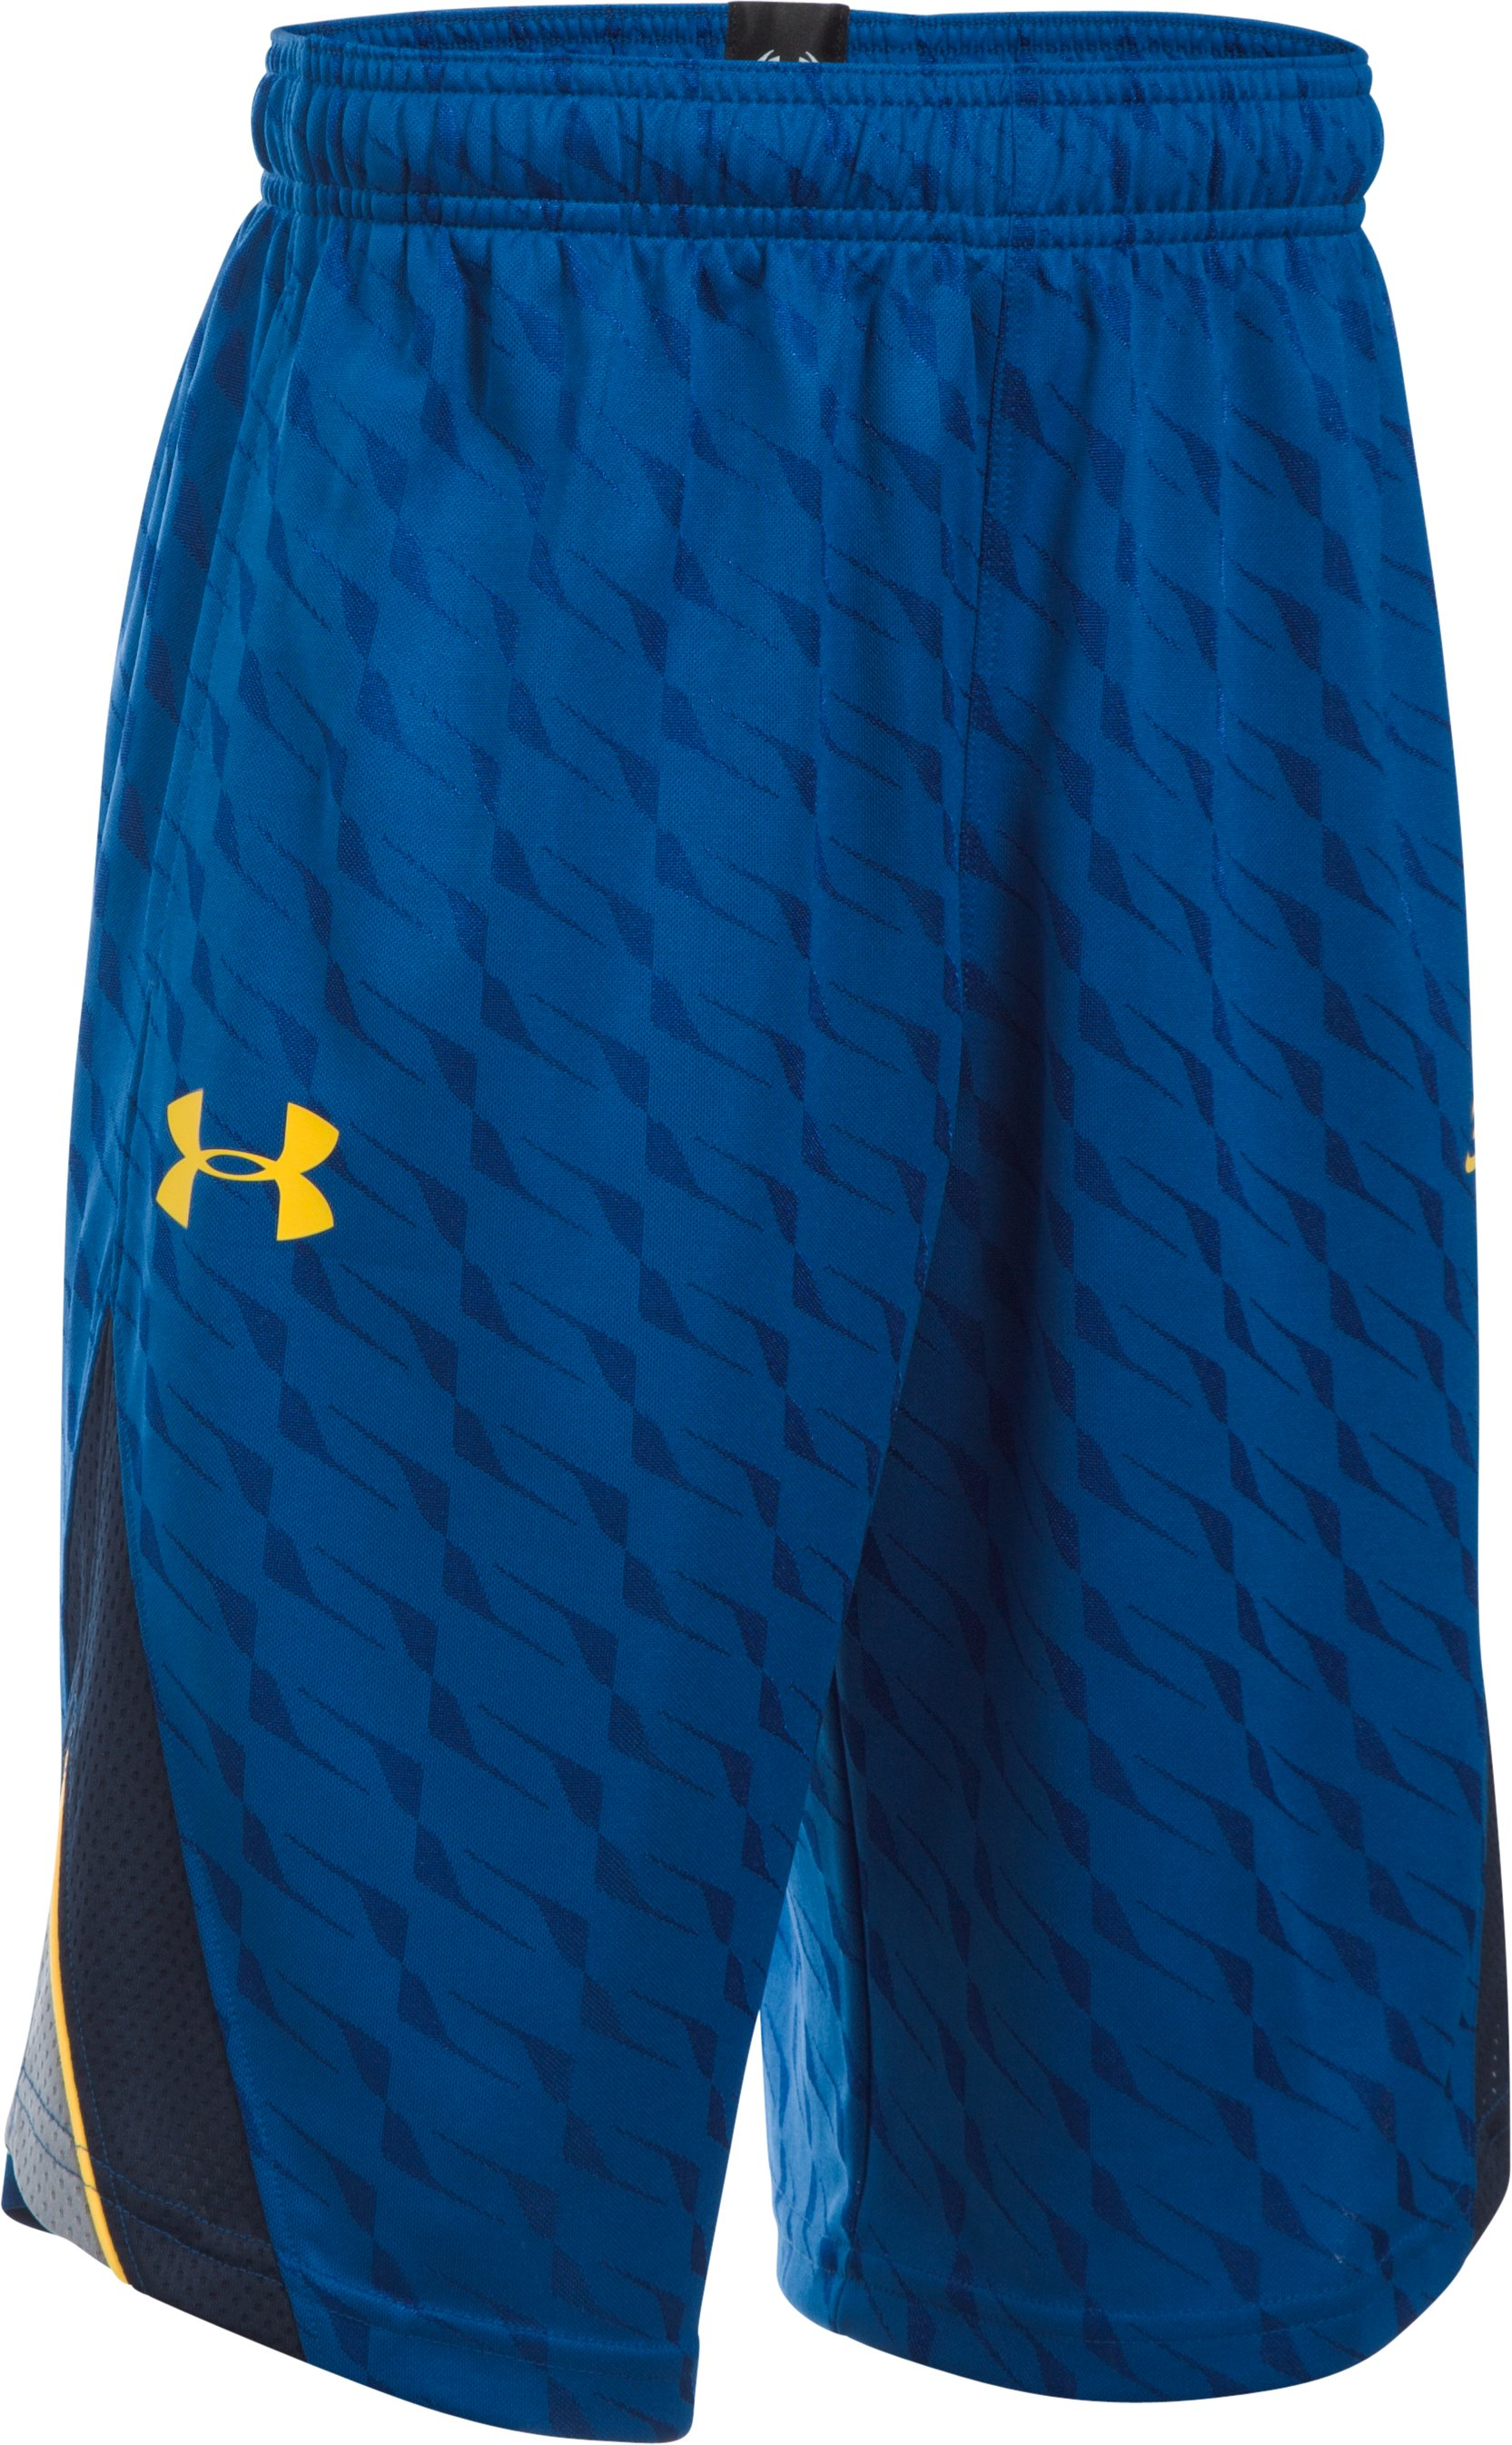 Boys' SC30 Essentials Shorts, Royal